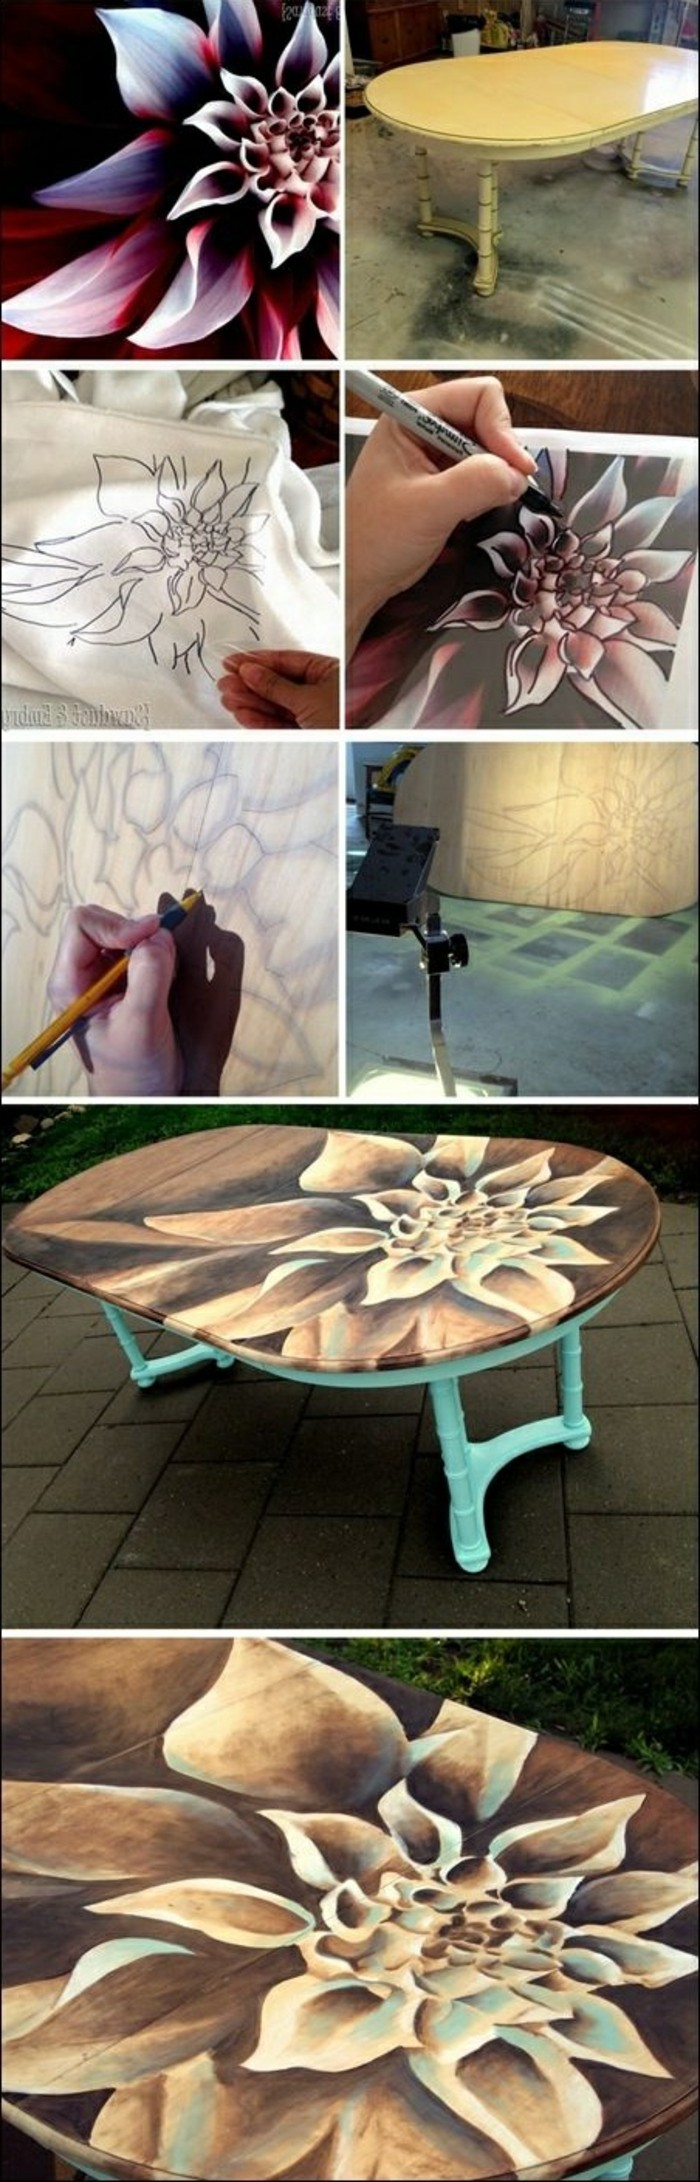 DIY furniture: 60 cool DIY ideas for your home